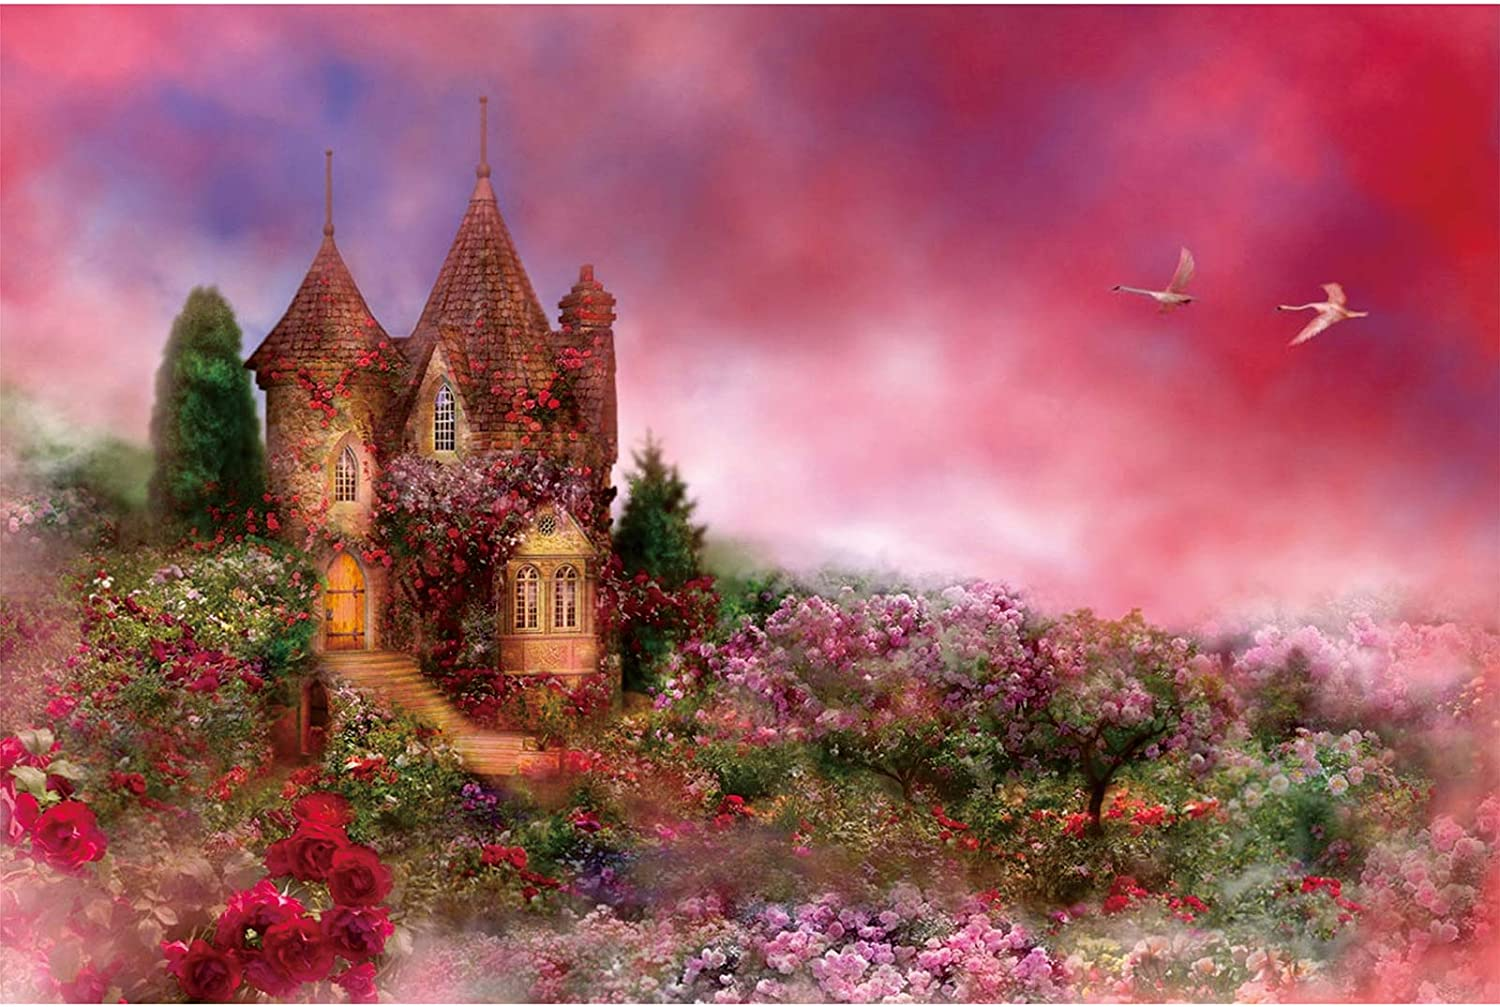 Ingooood-Jigsaw Puzzle 1000 Pieces-Sneak Peek Series-Abandoned Castle/_IG-1011 Entertainment Toys for Adult Special Graduation or Birthday Gift Home Decor